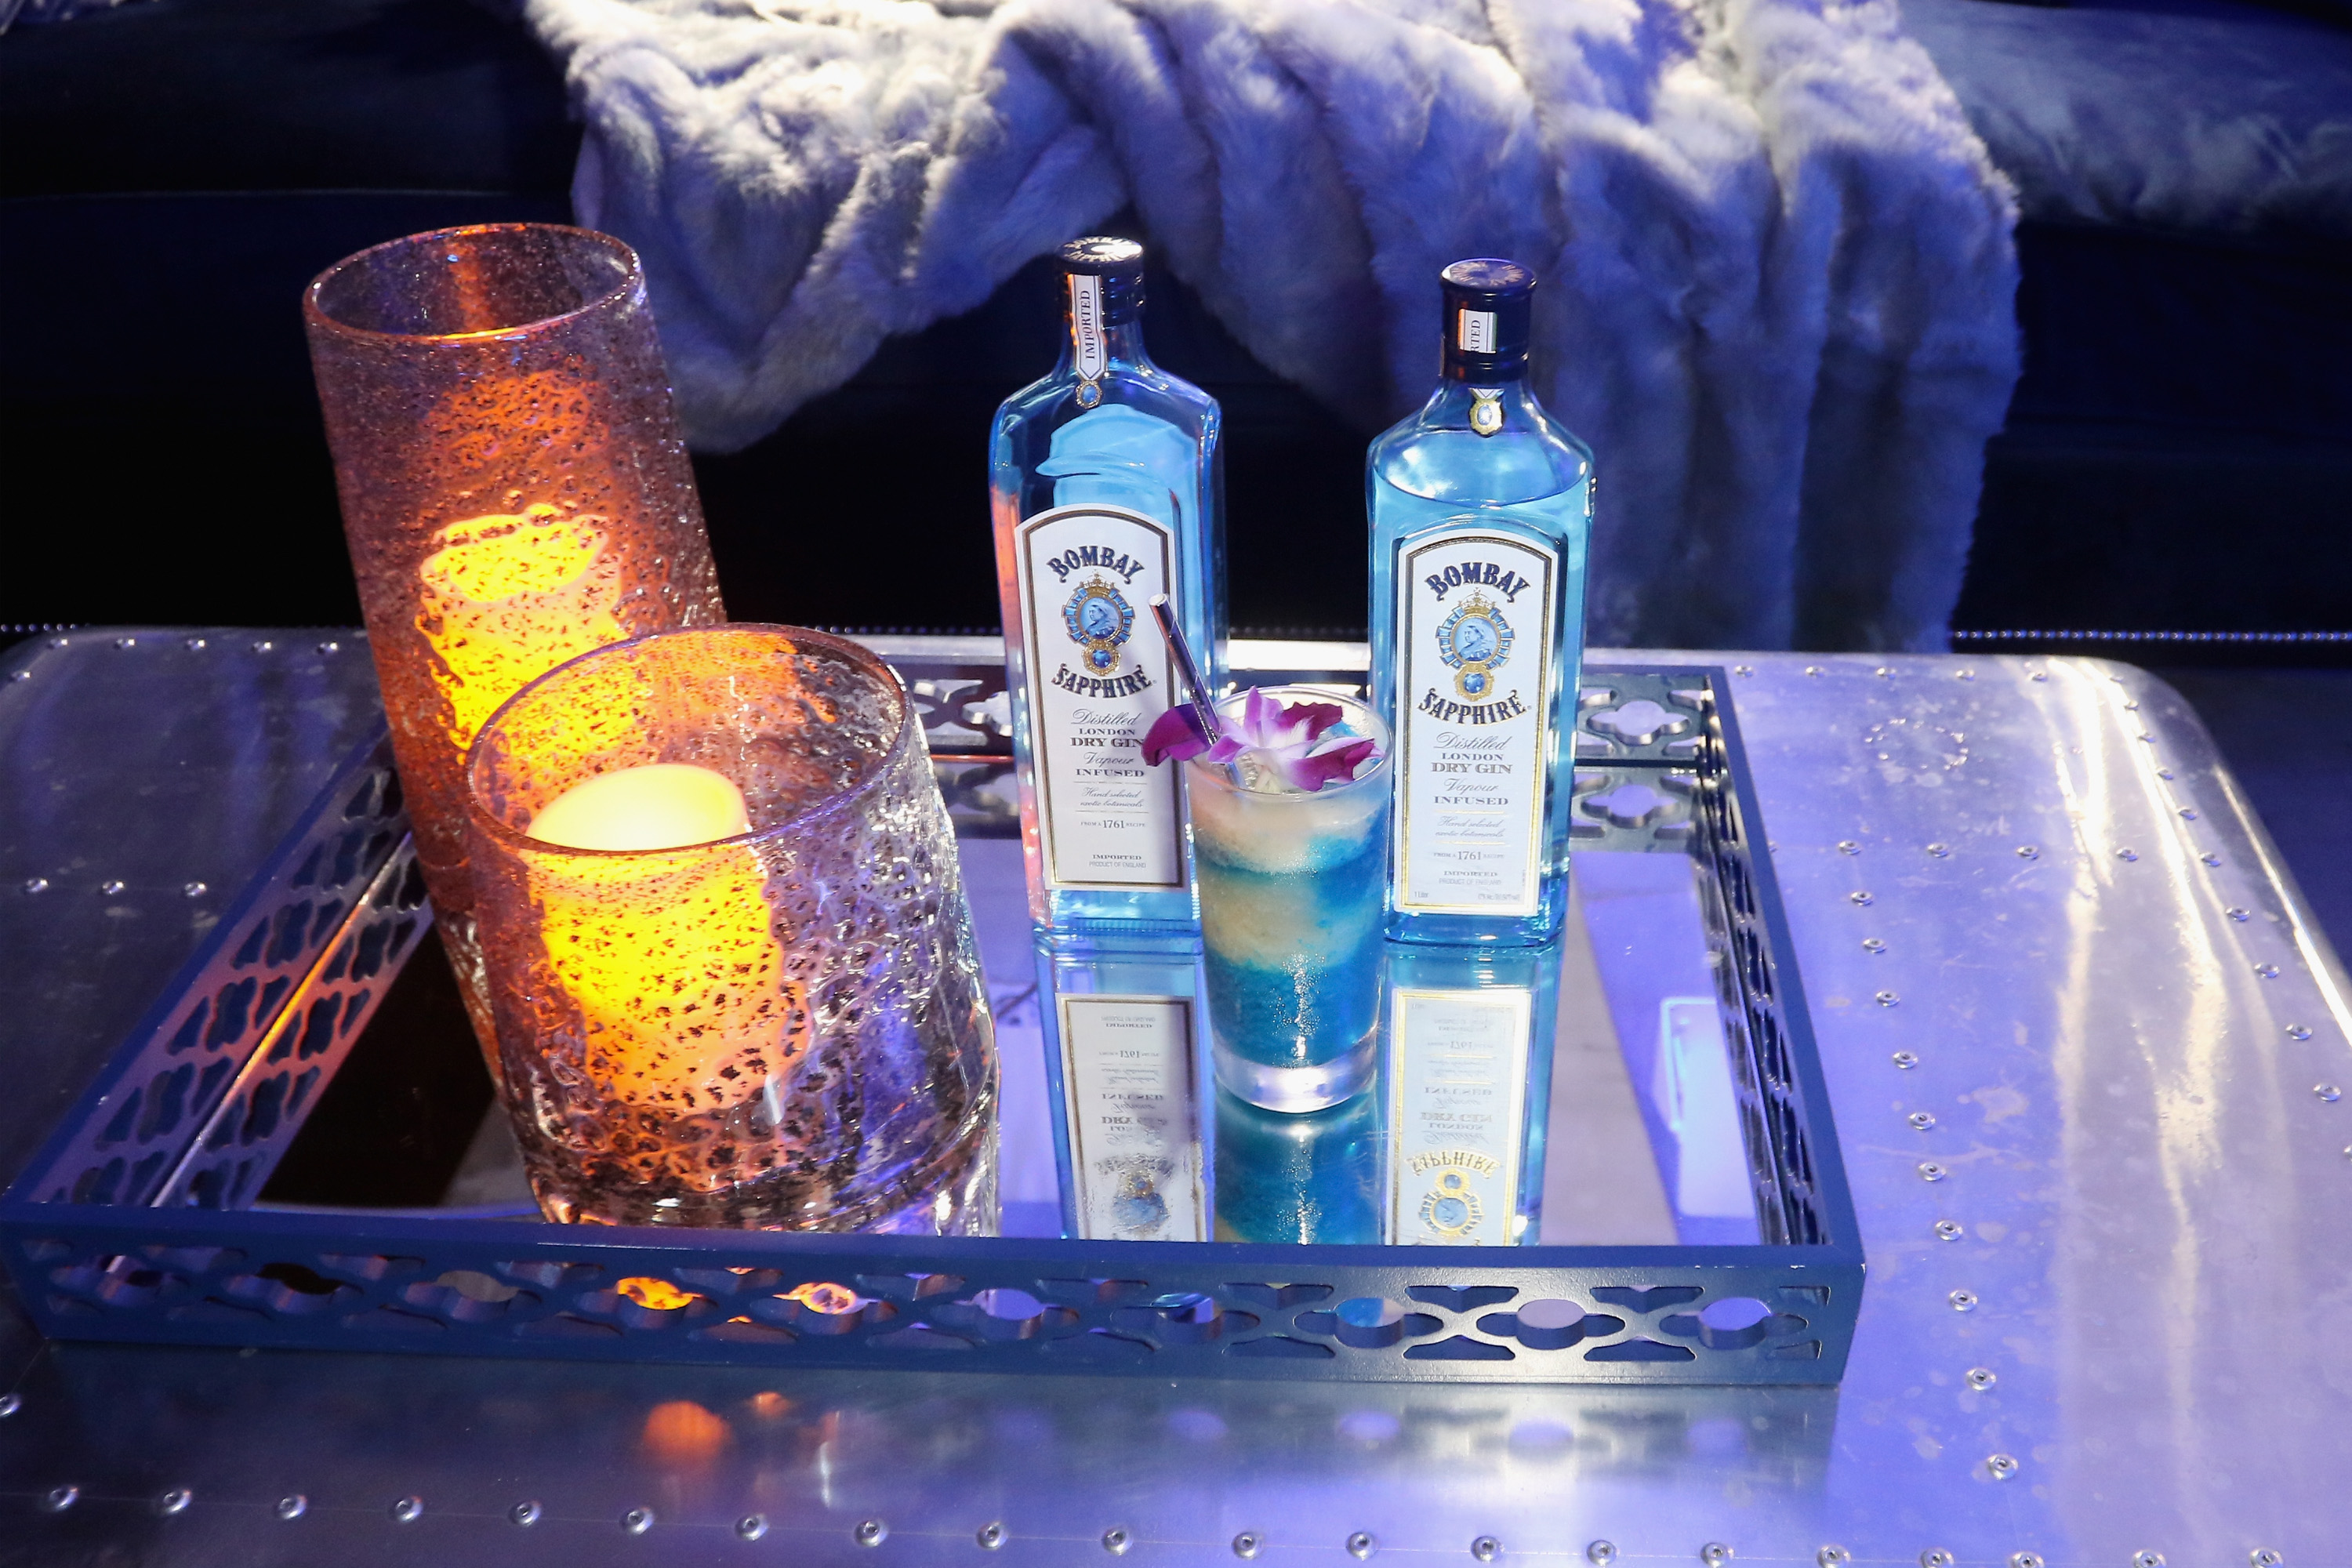 MIAMI, FL - DECEMBER 01:  Bombay Sapphire beverages on display during the 7th Annual Bombay Sapphire Artisan Series Finale hosted by Russell and Danny Simmons at 11 11 Road on December 1, 2016